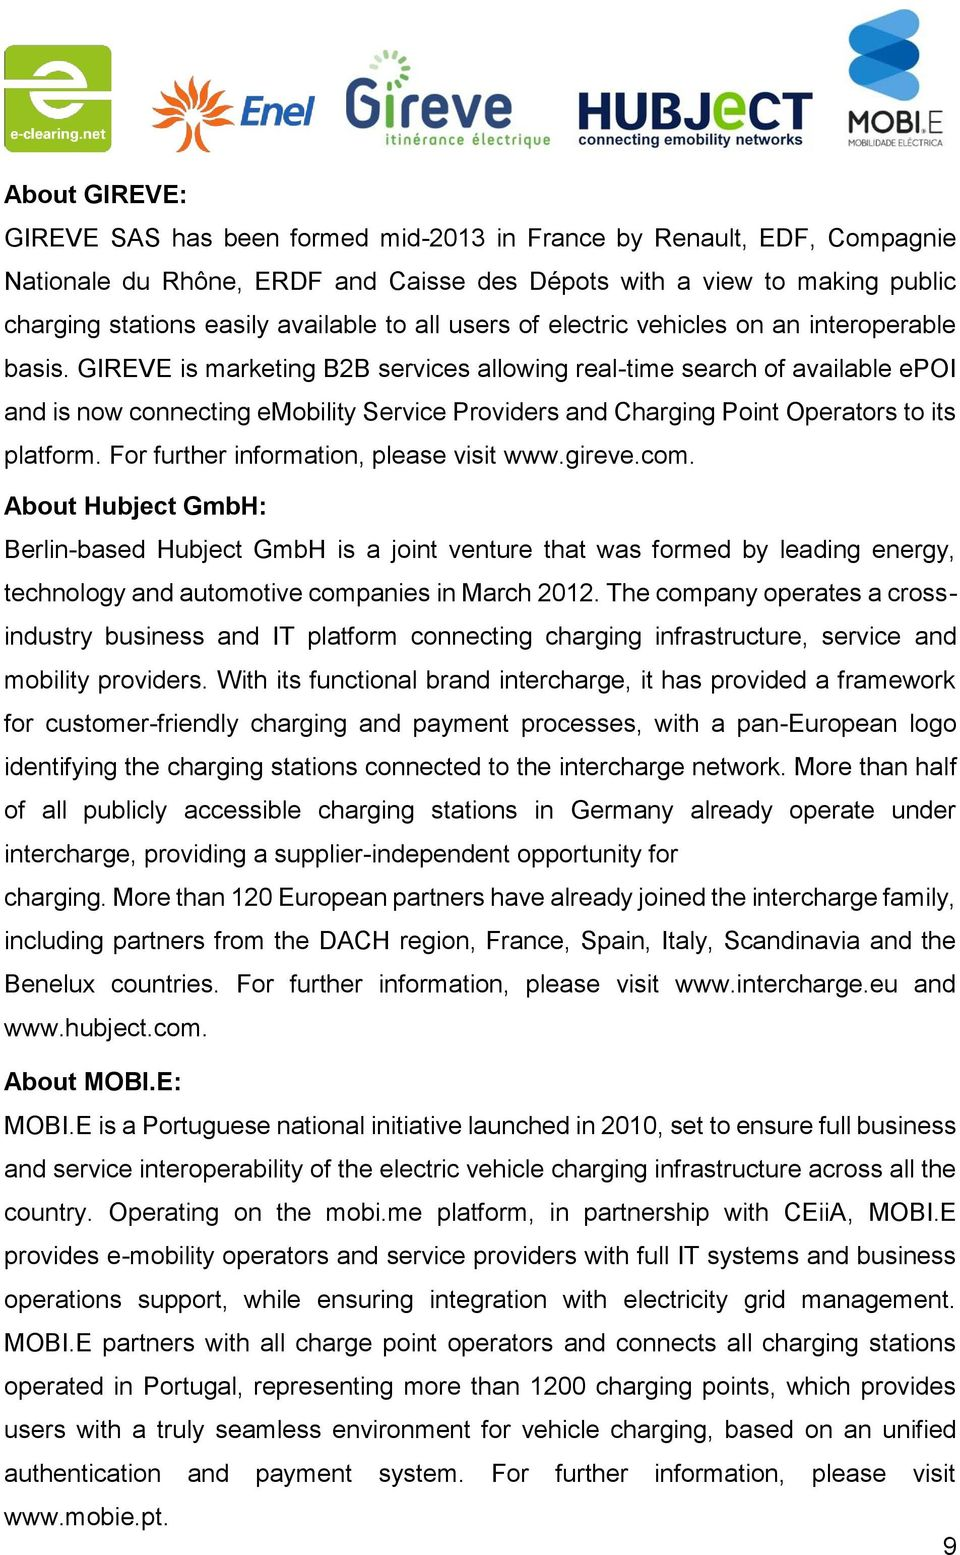 GIREVE is marketing B2B services allowing real-time search of available epoi and is now connecting emobility Service Providers and Charging Point Operators to its platform.